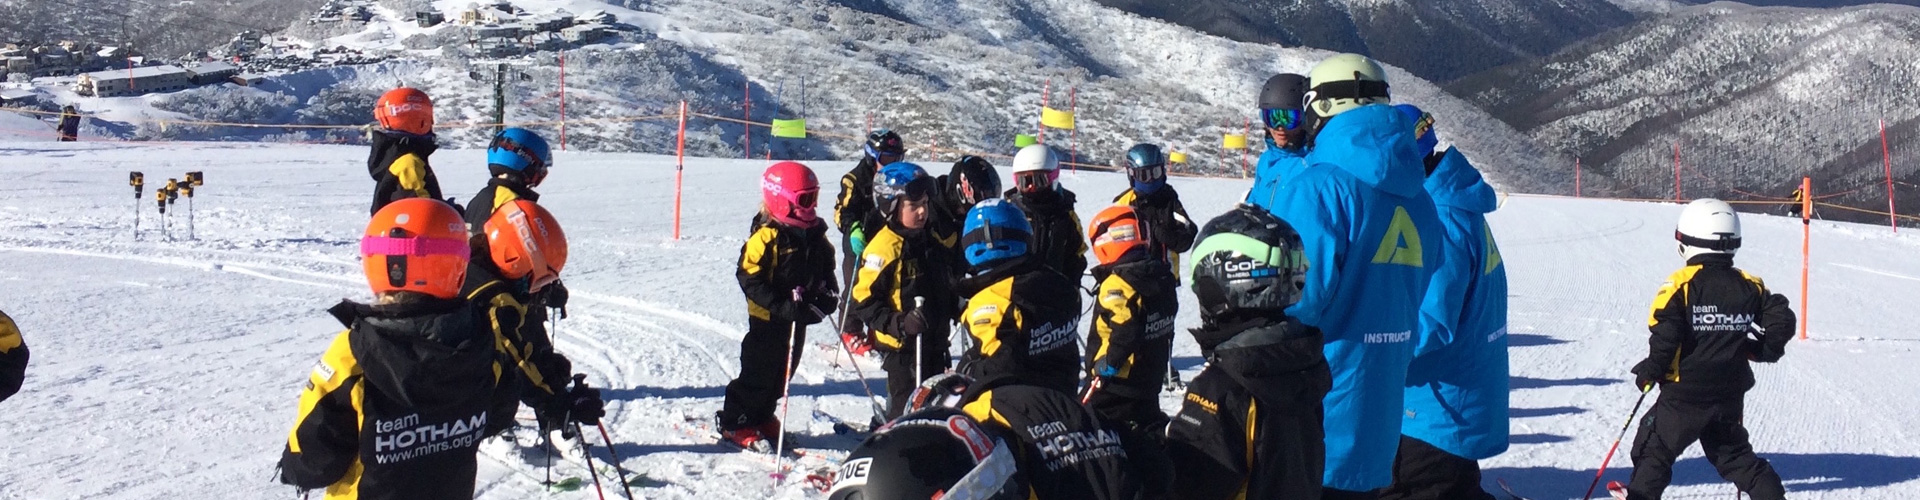 school groups at hotham